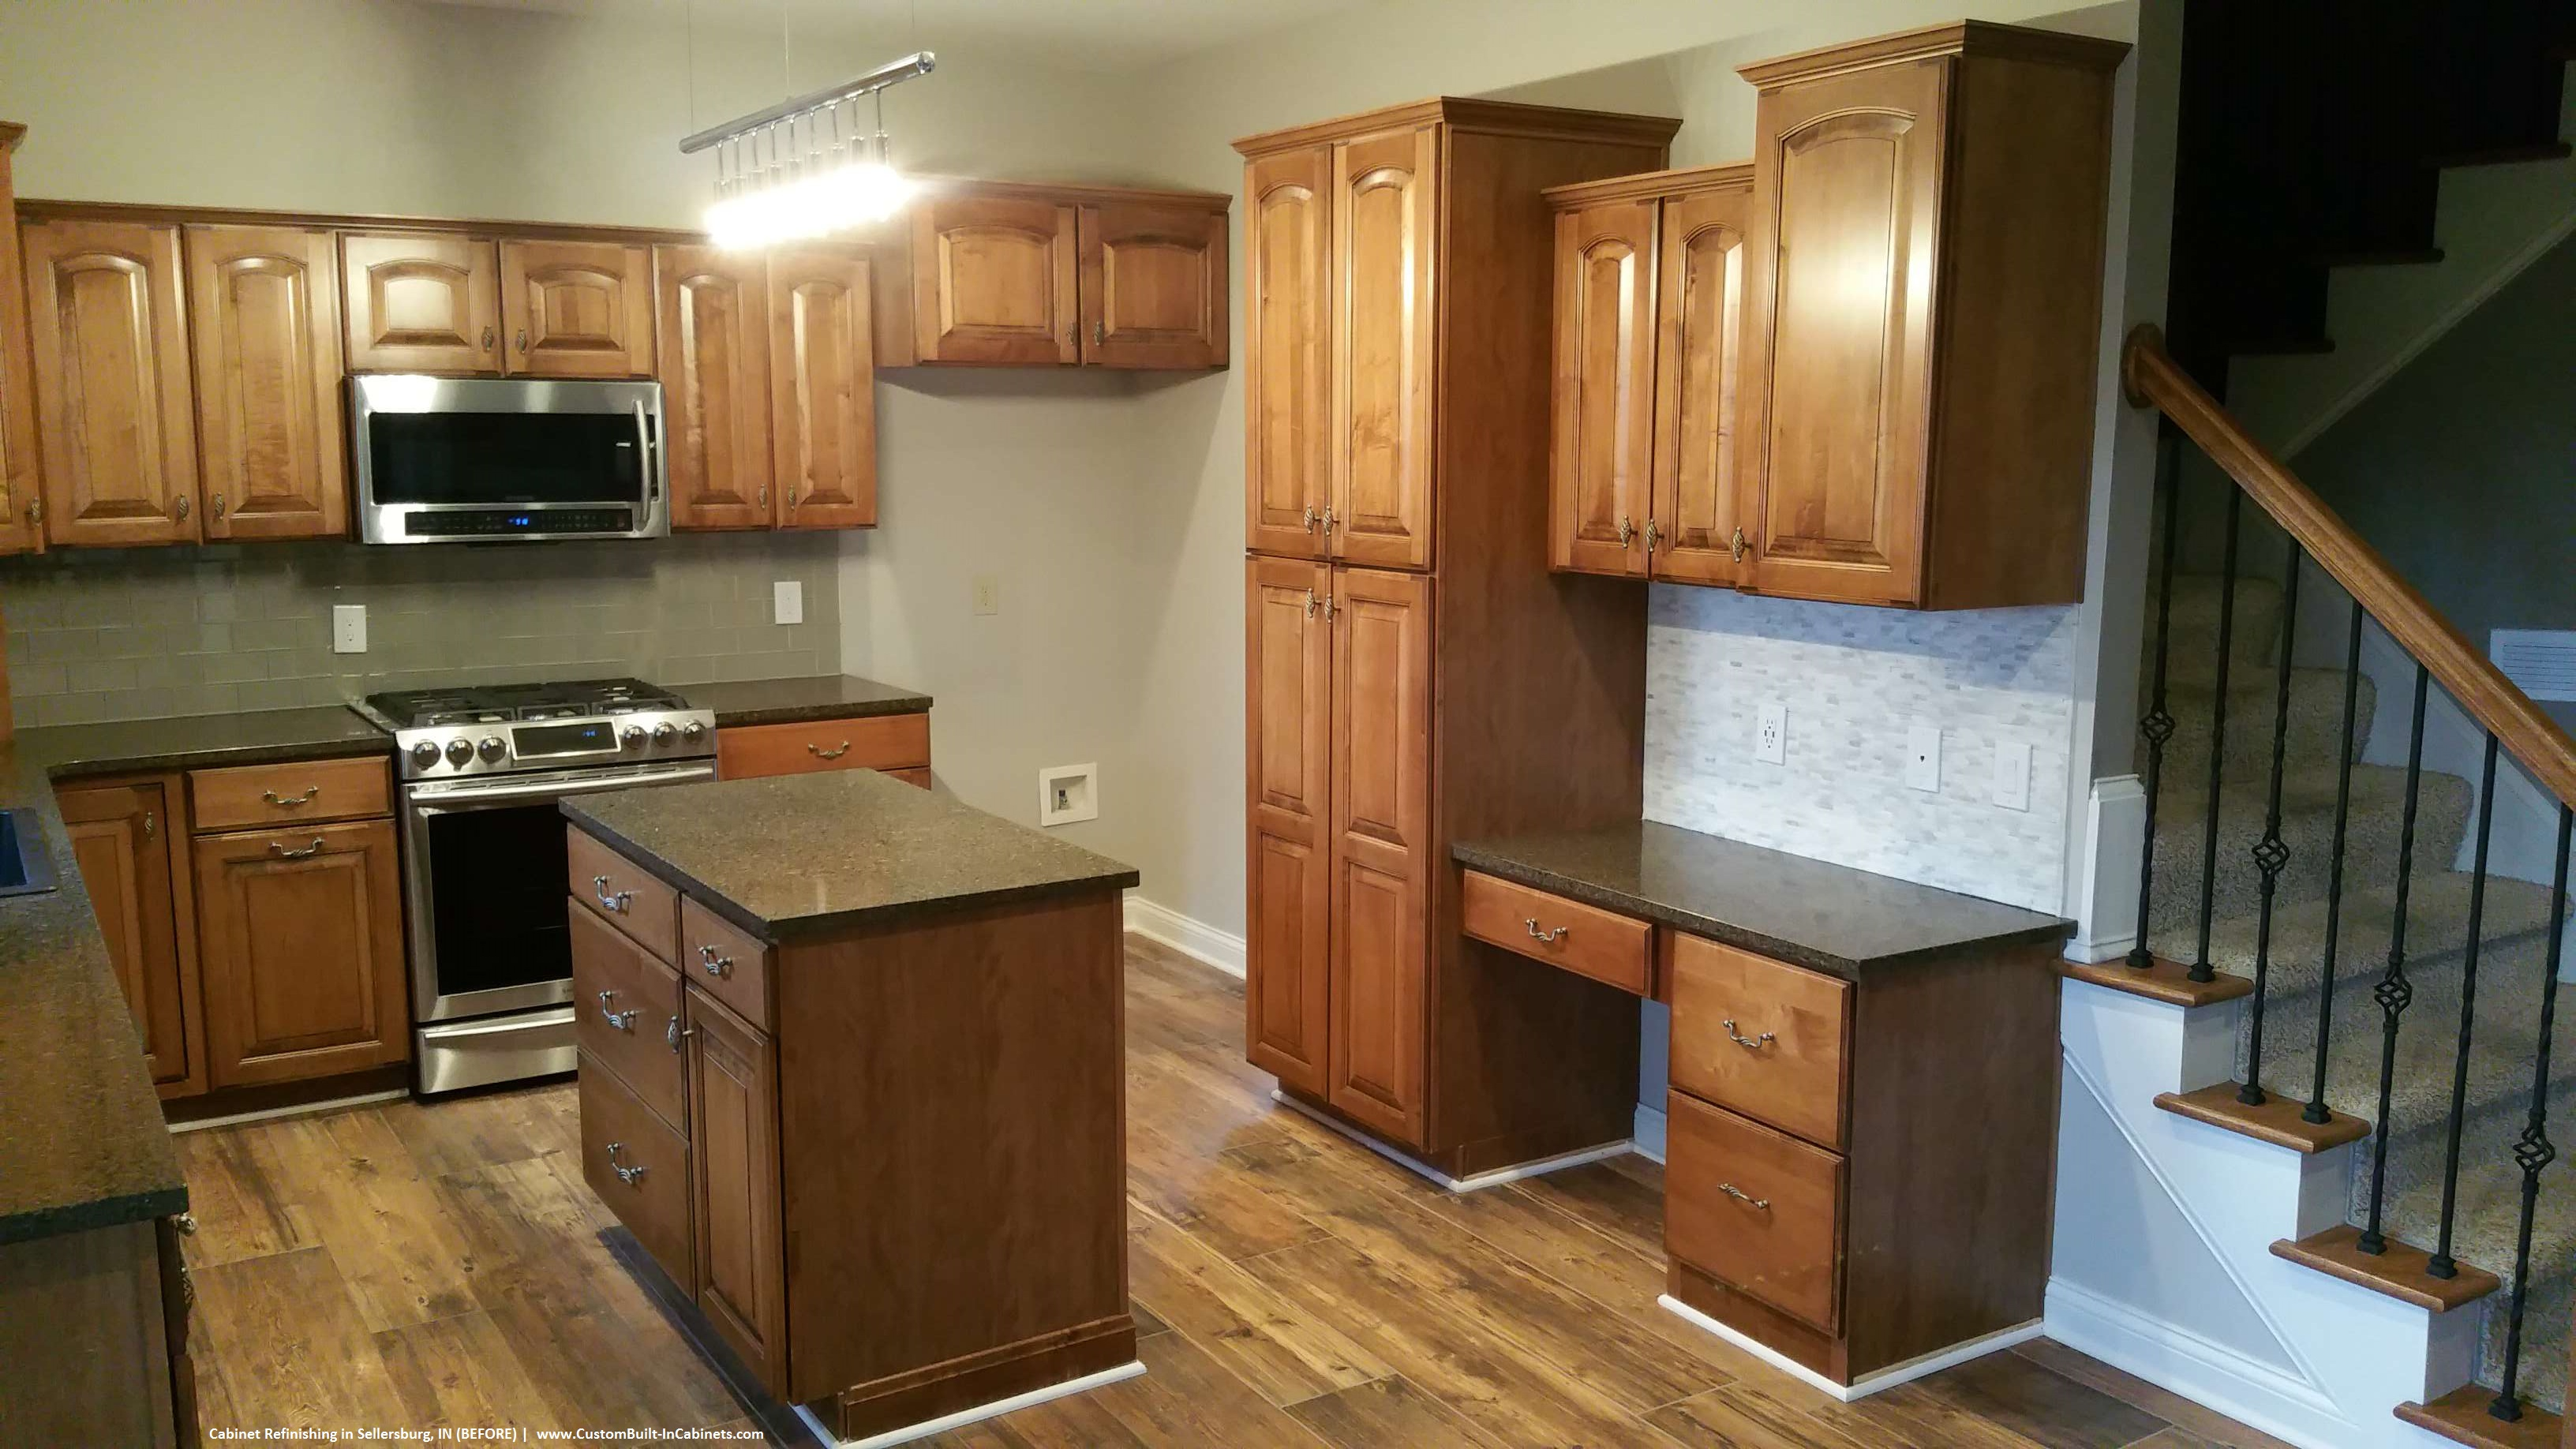 Can Kitchen Cabinets Be Refinished Cabinet Refinishing Louisville And Southern Indiana Areas